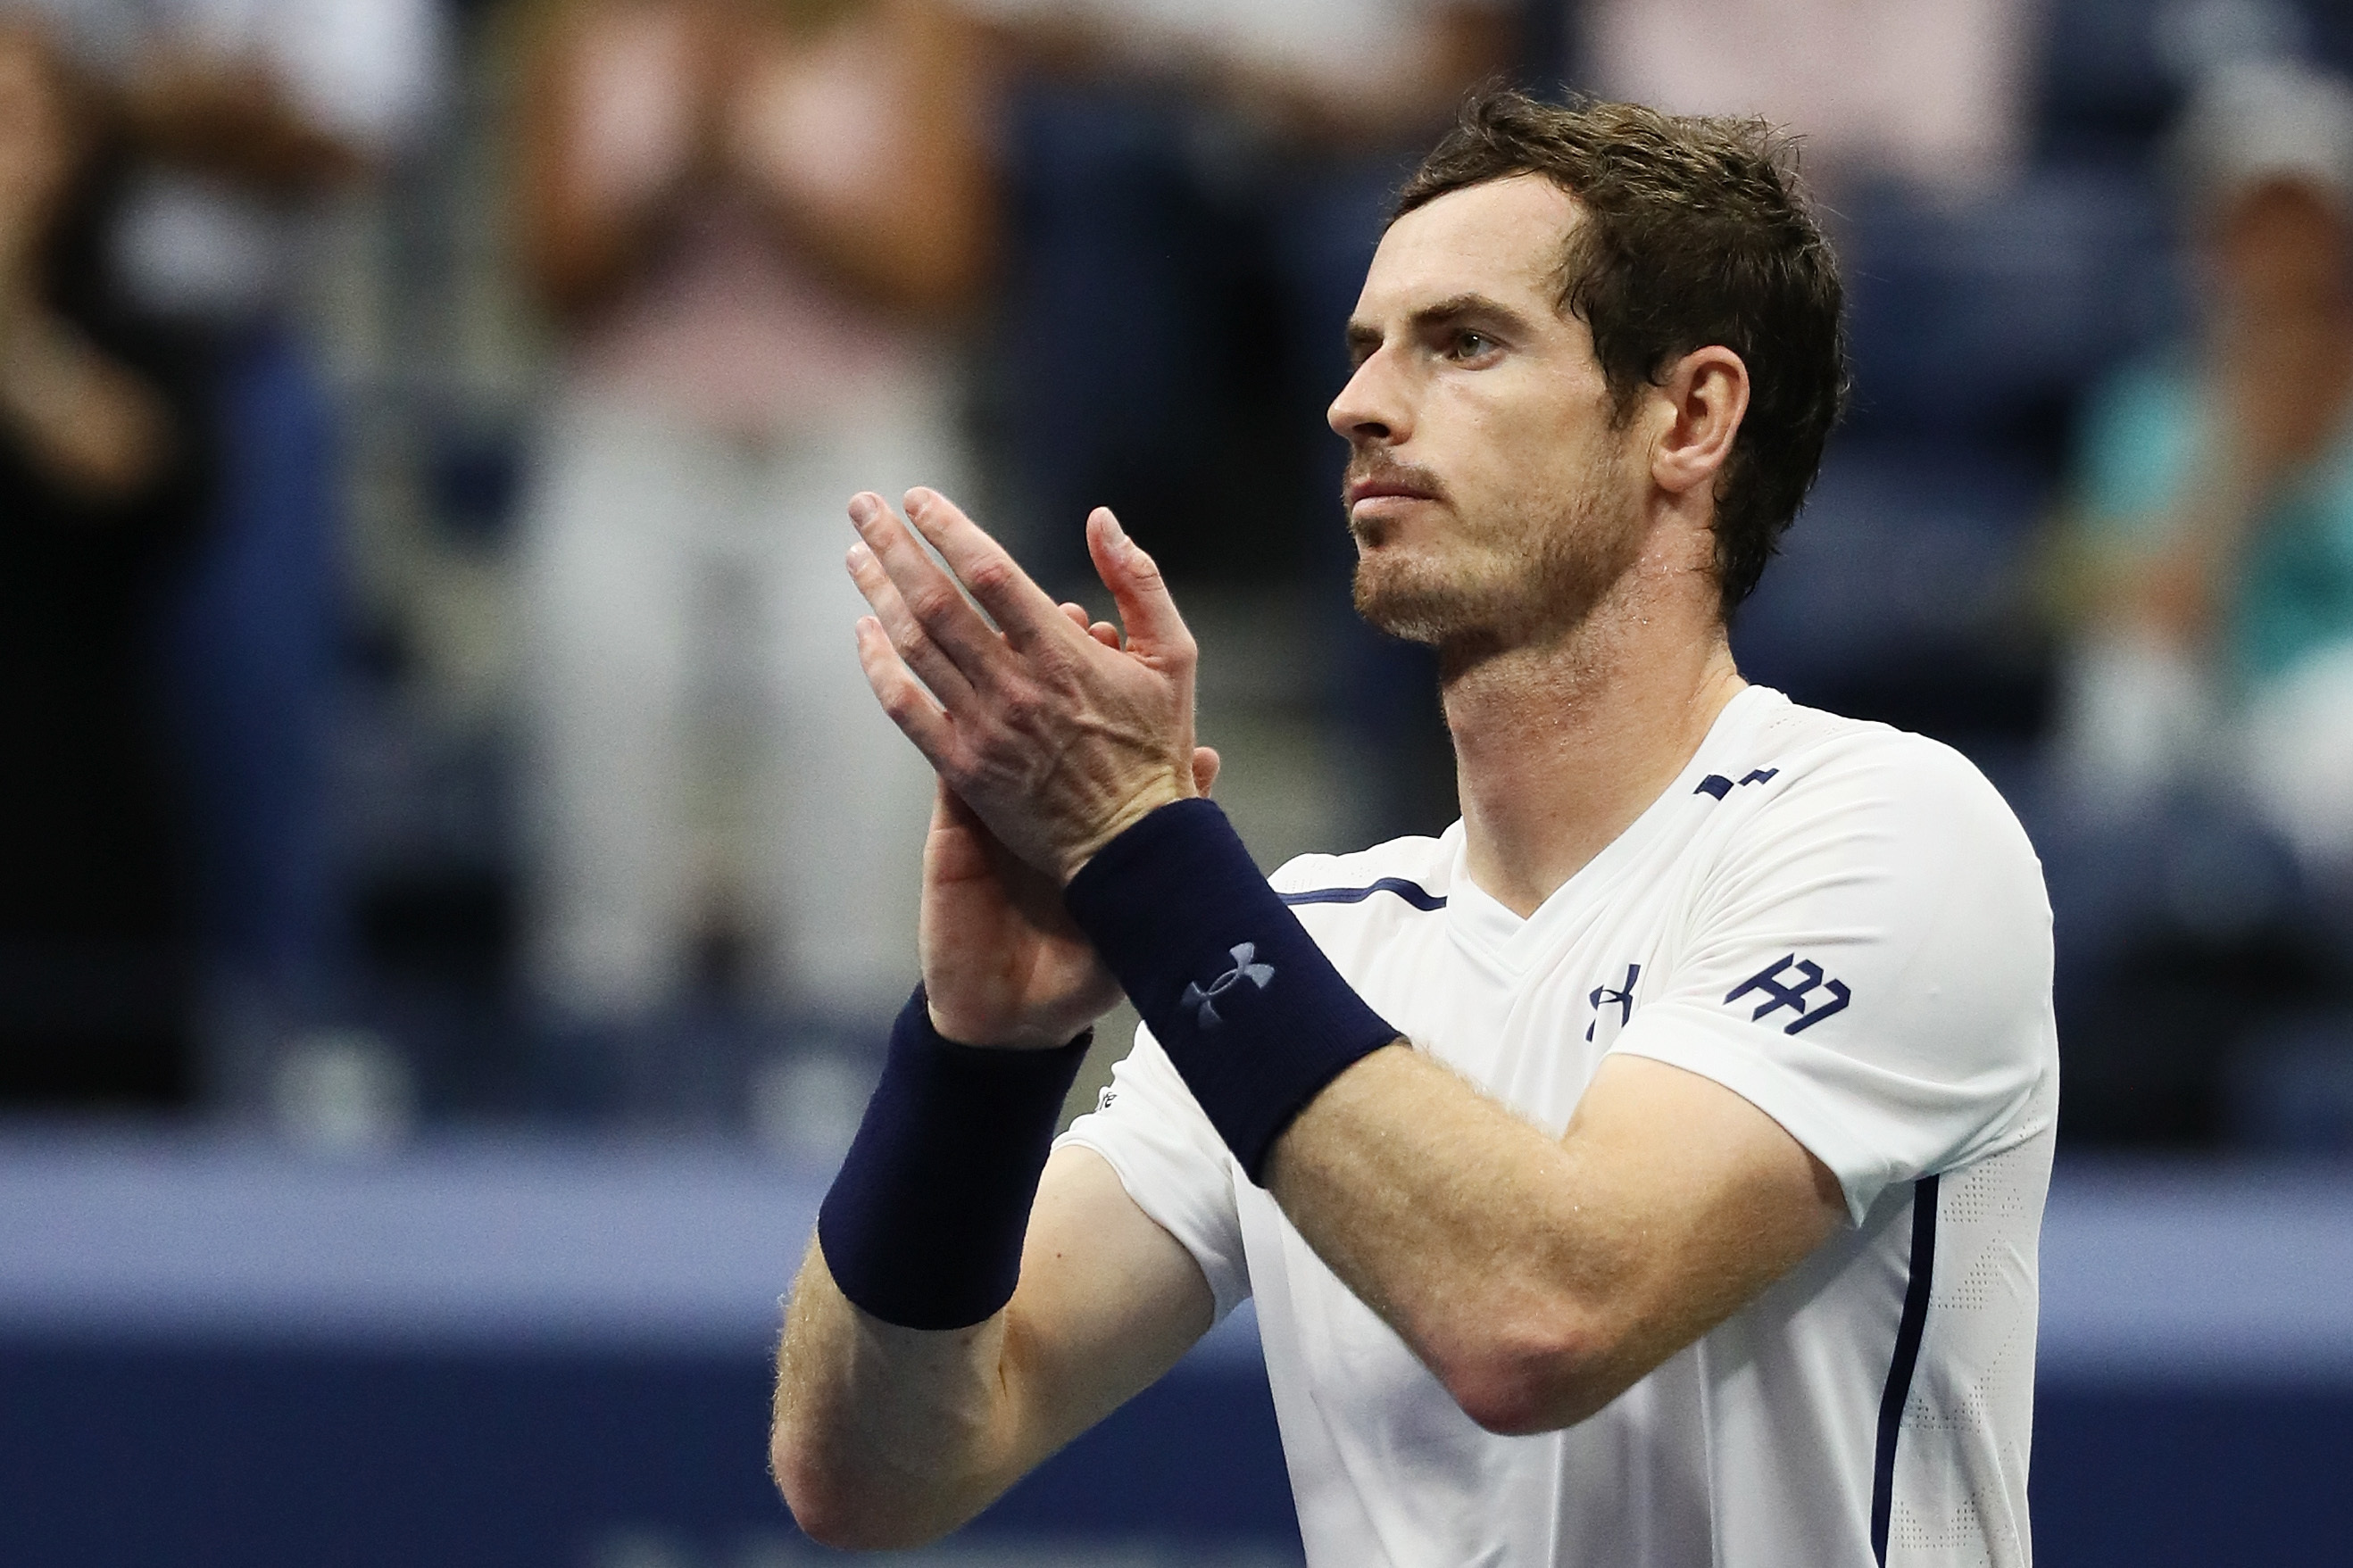 Andy Murray celebrates his victory.